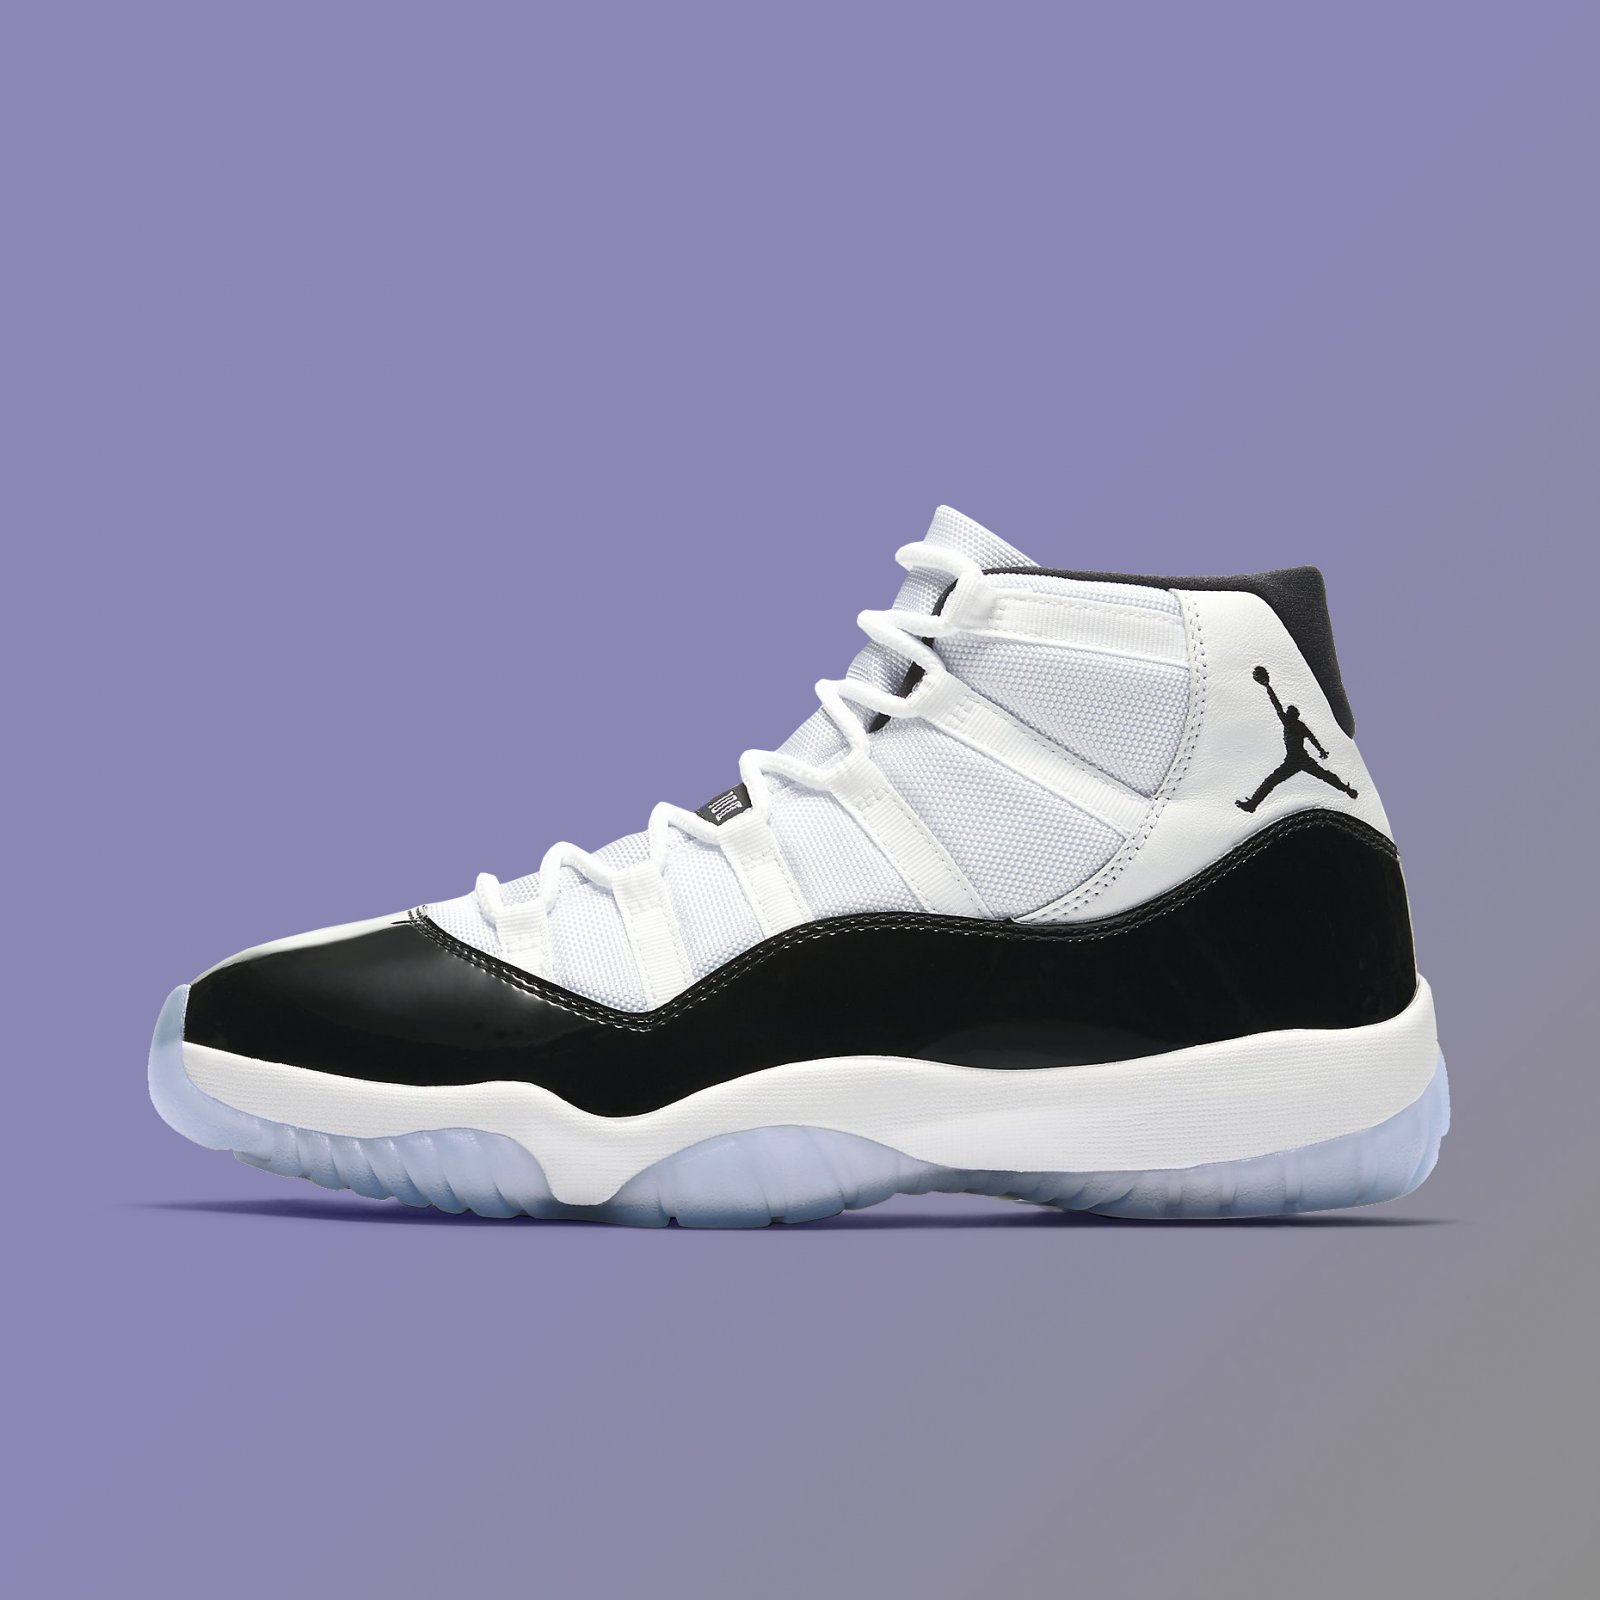 Details about Air Jordan 11 Retro White Concord Black 2018 OG XI Nike Men's  Kid's Sneakers DS